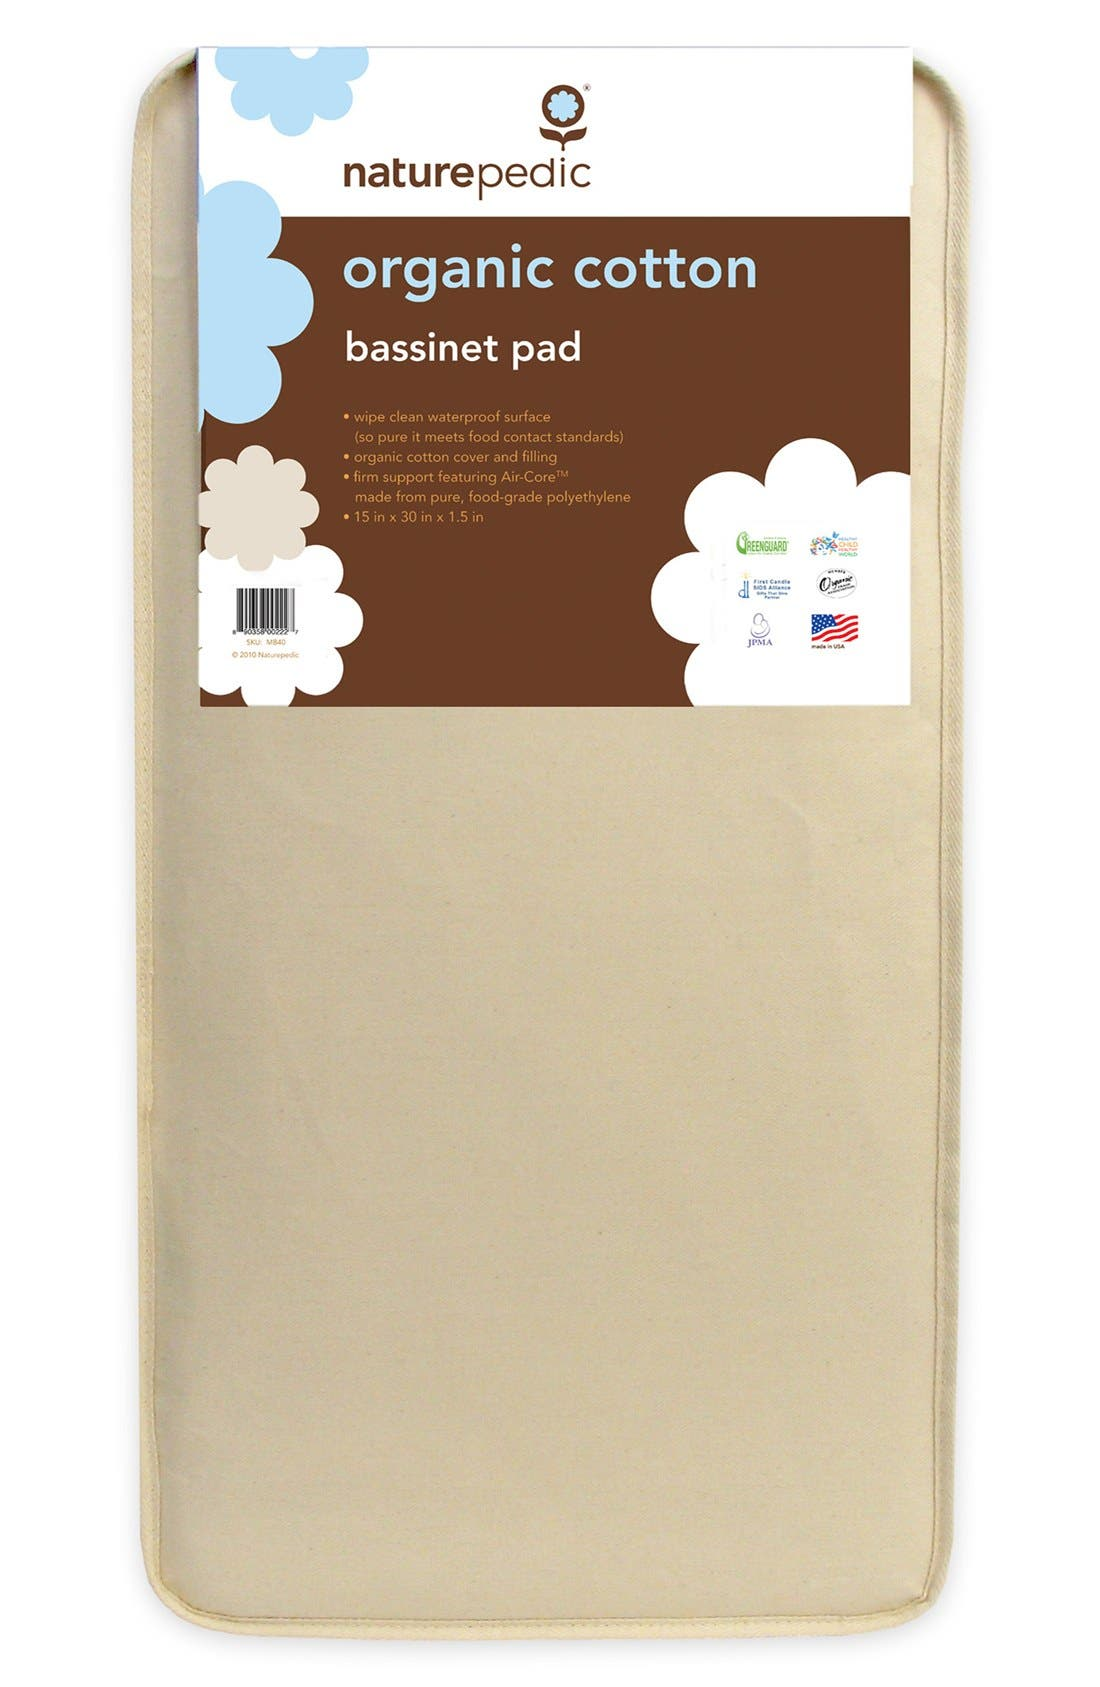 Naturepedic Organic Cotton Bassinet Pad